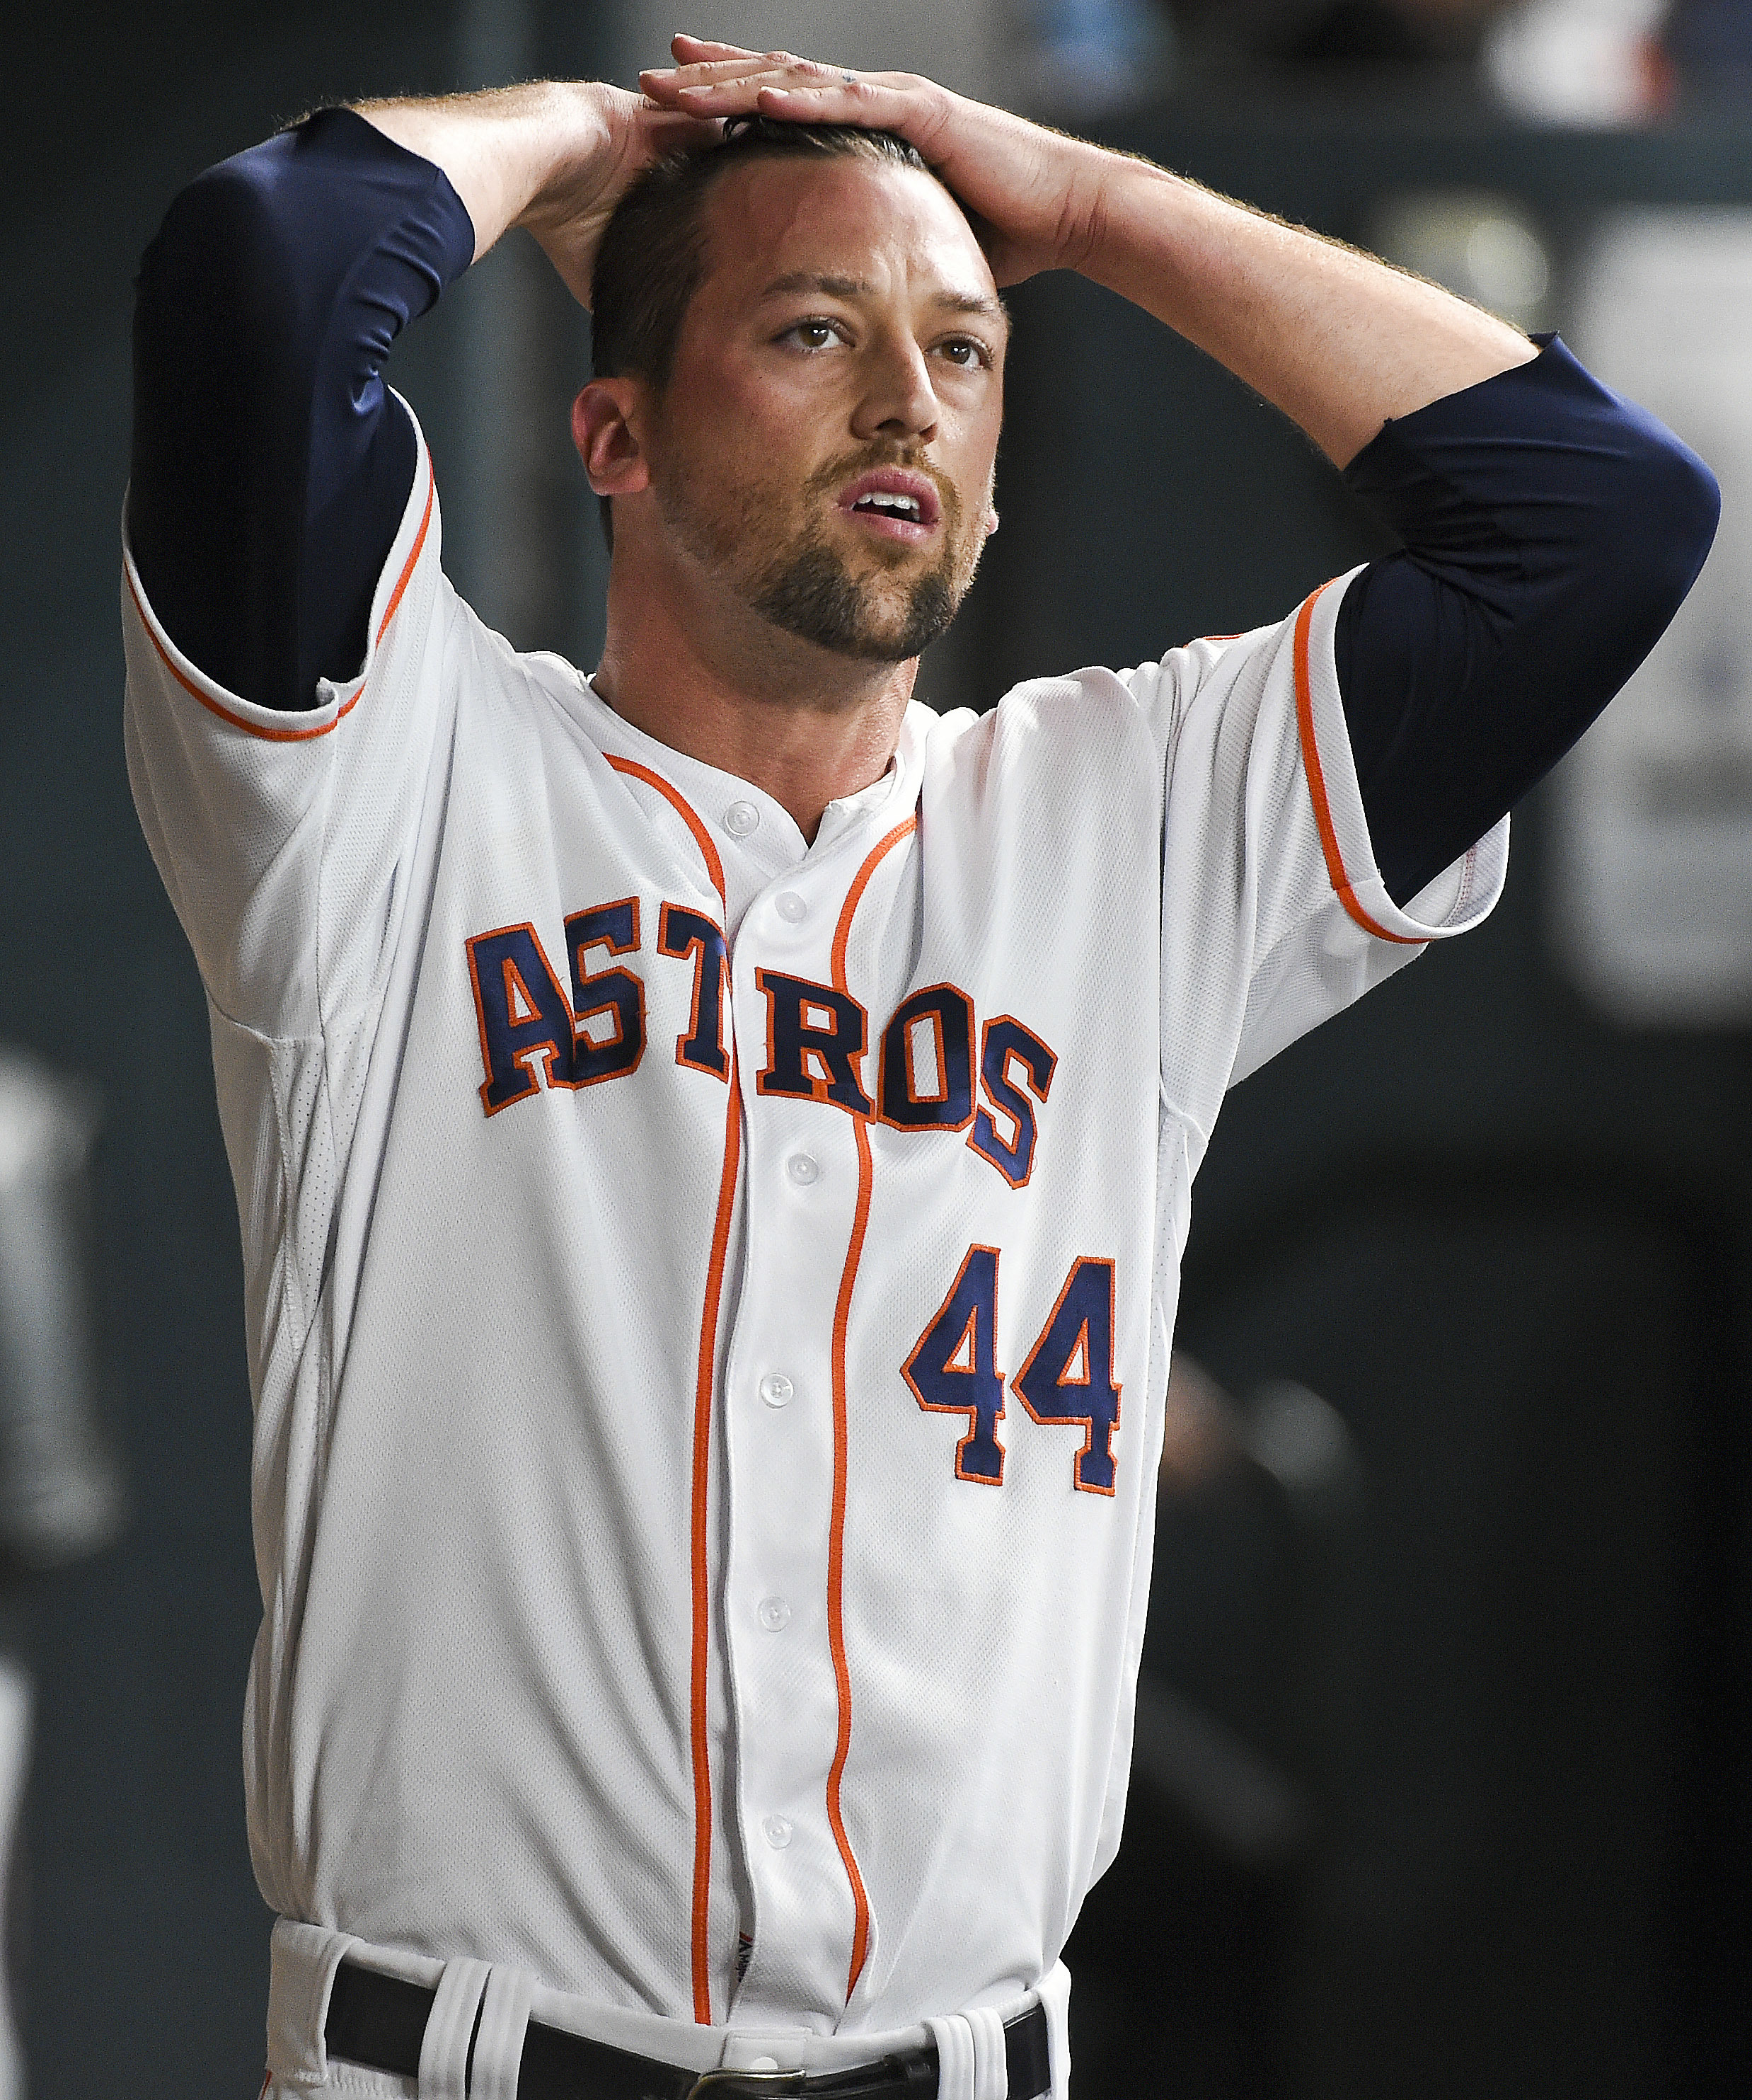 Houston Astros relief pitcher Luke Gregerson walks in the dugout after being pulled from a baseball game after giving up the tying home run to Oakland Athletics' Jed Lowrie during the ninth inning Saturday, June 4, 2016, in Houston. (AP Photo/Eric Christi